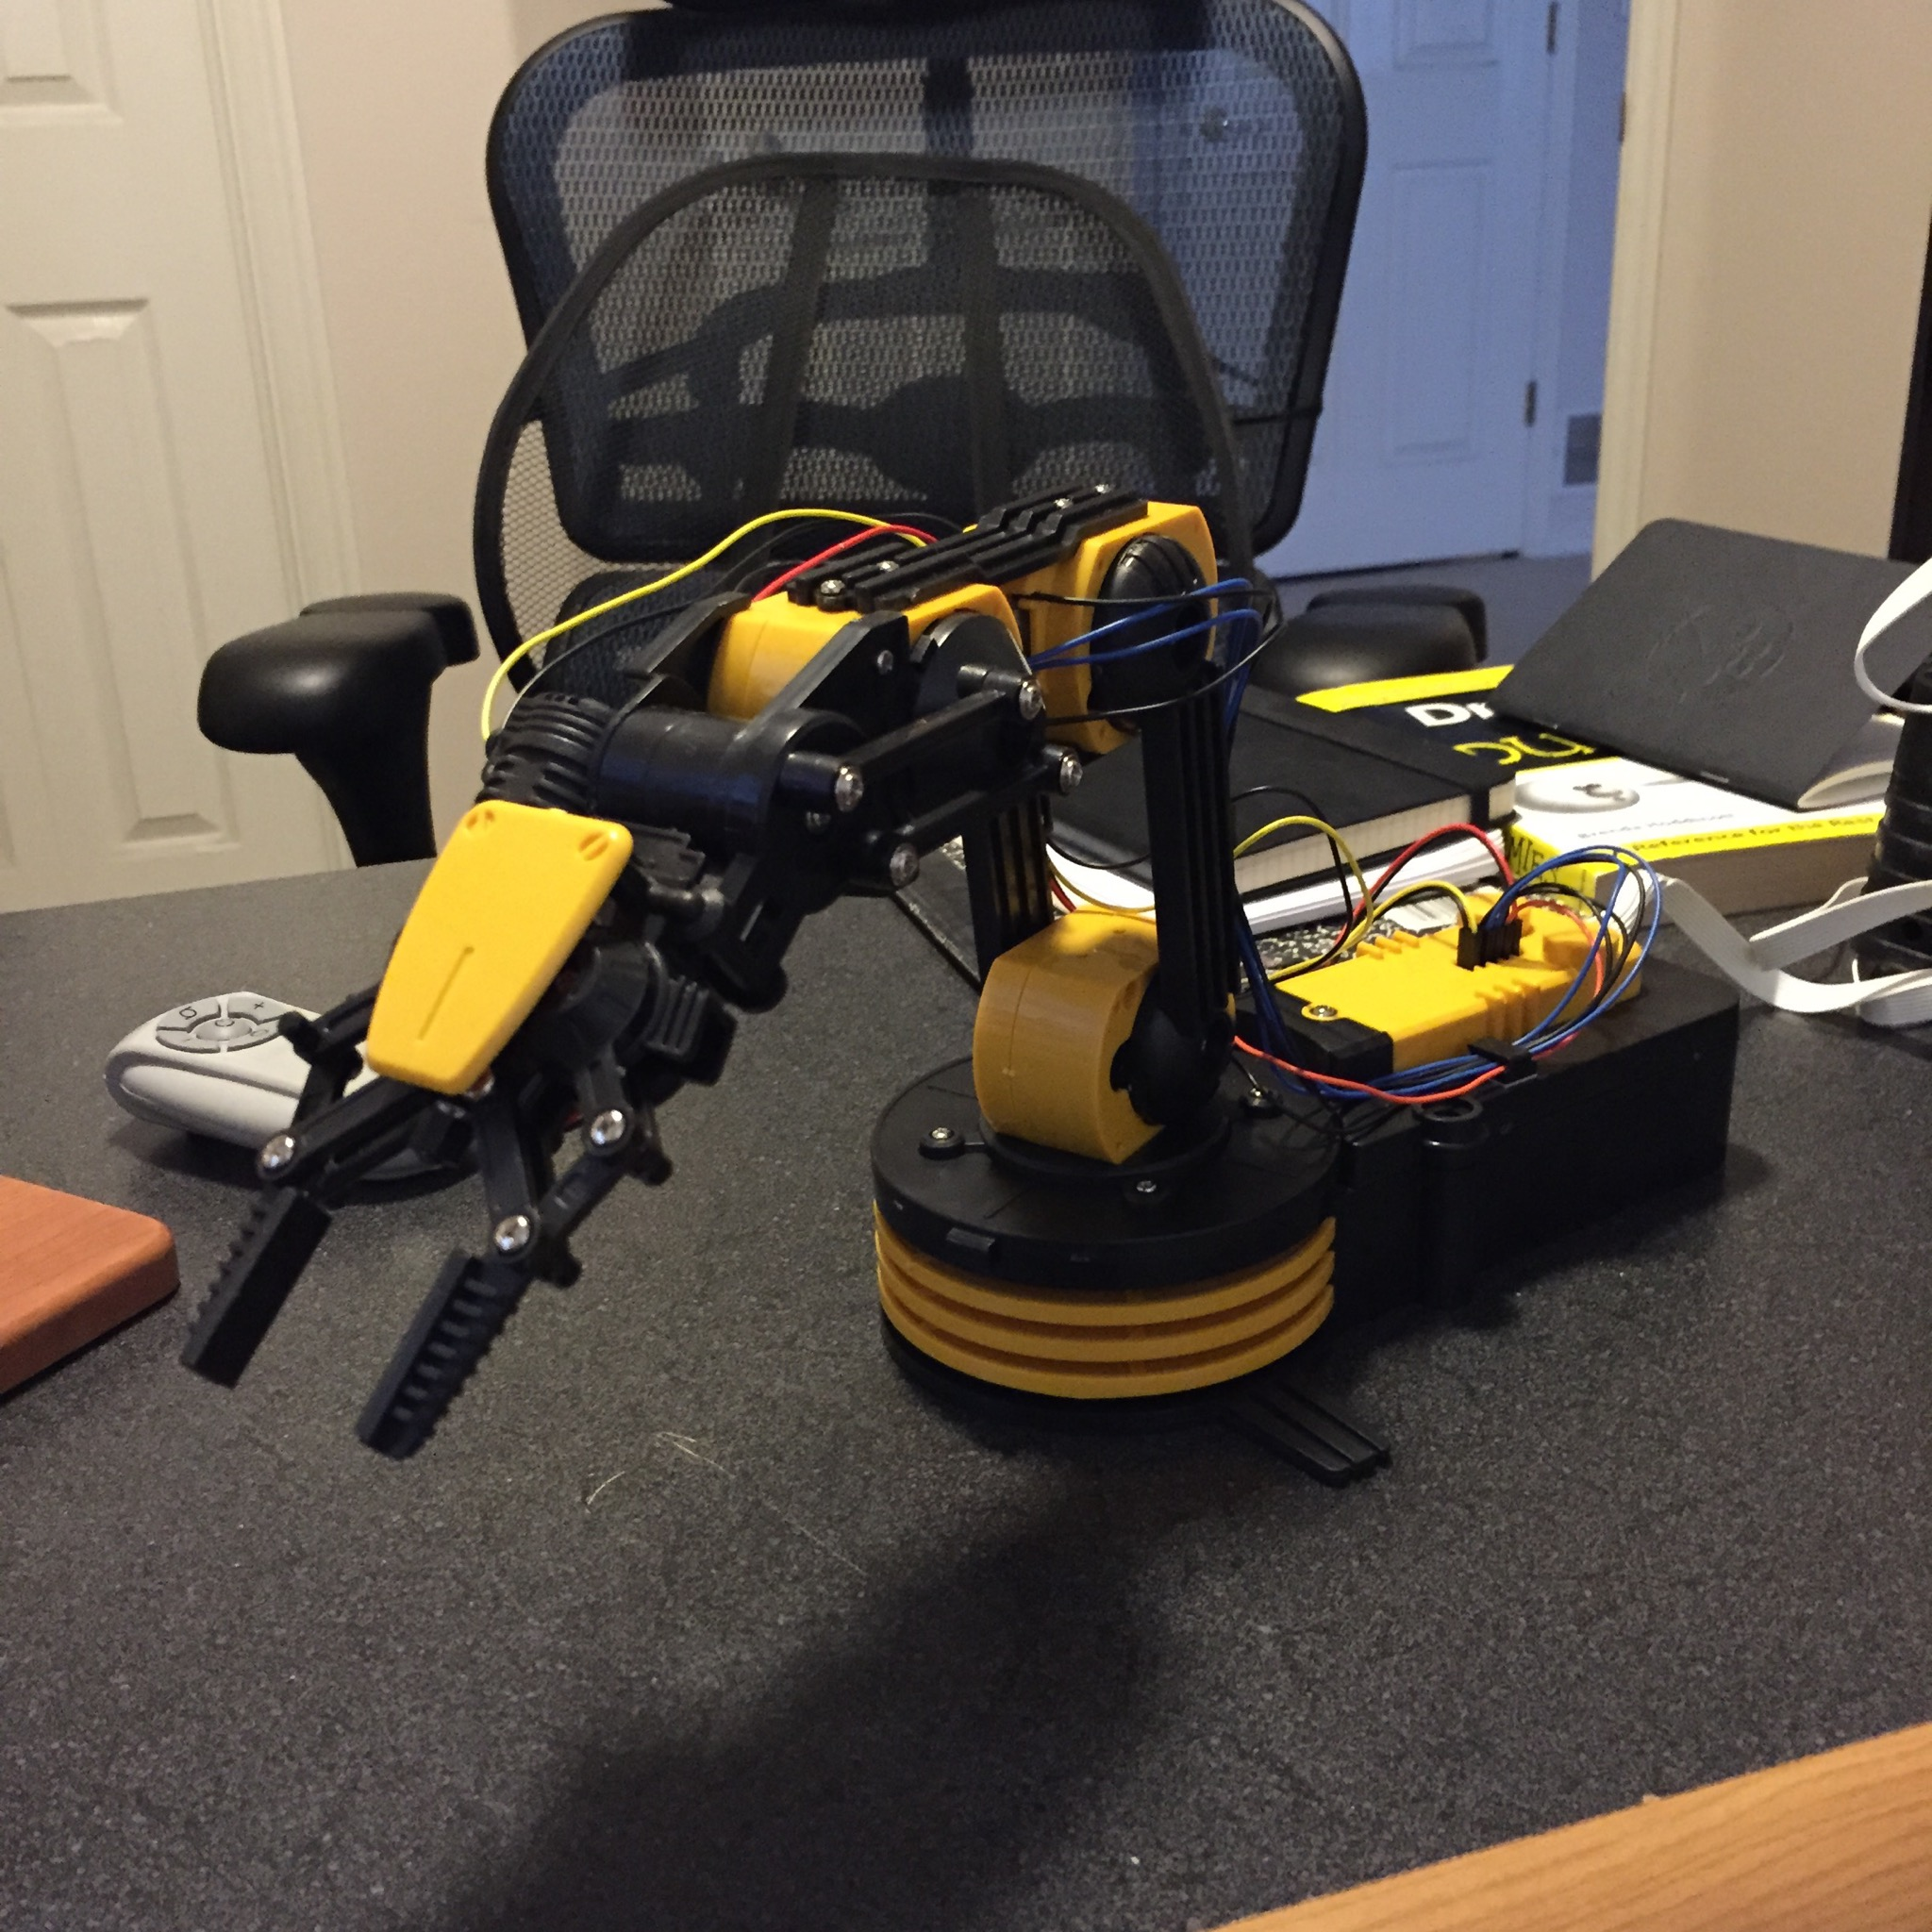 Completed robot arm